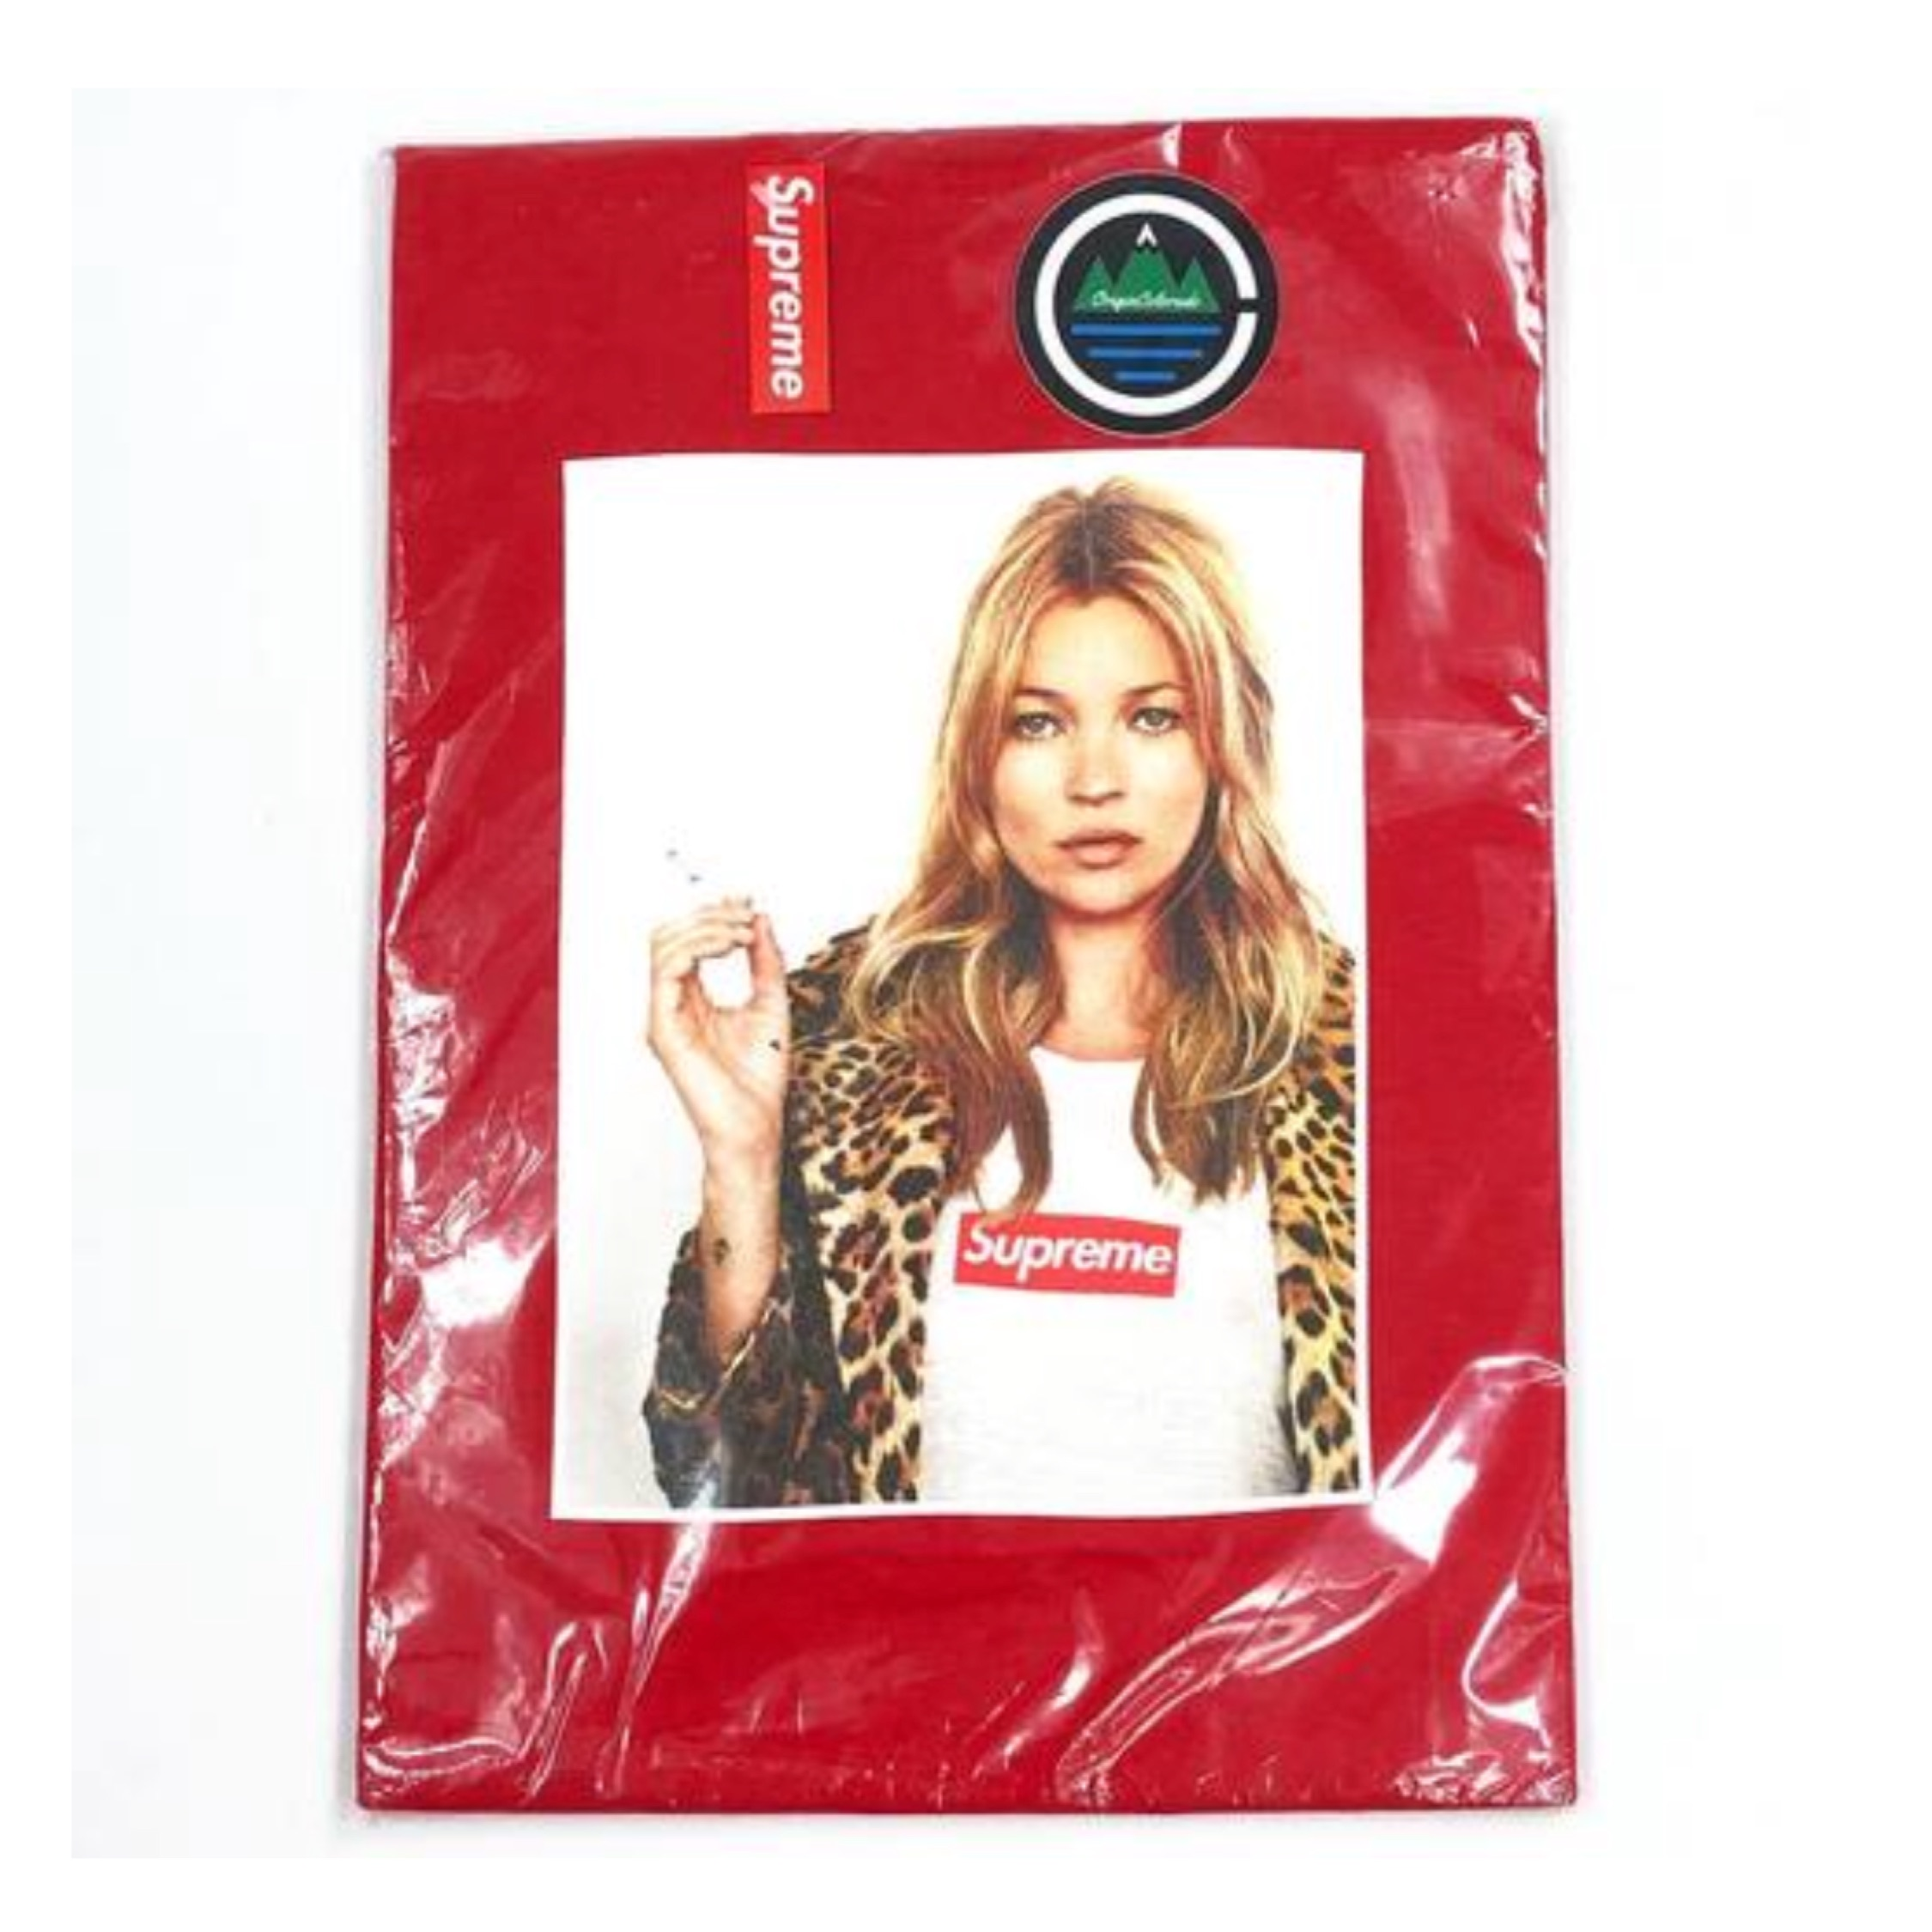 Supreme Kate Moss T Shirt Photo Dswt